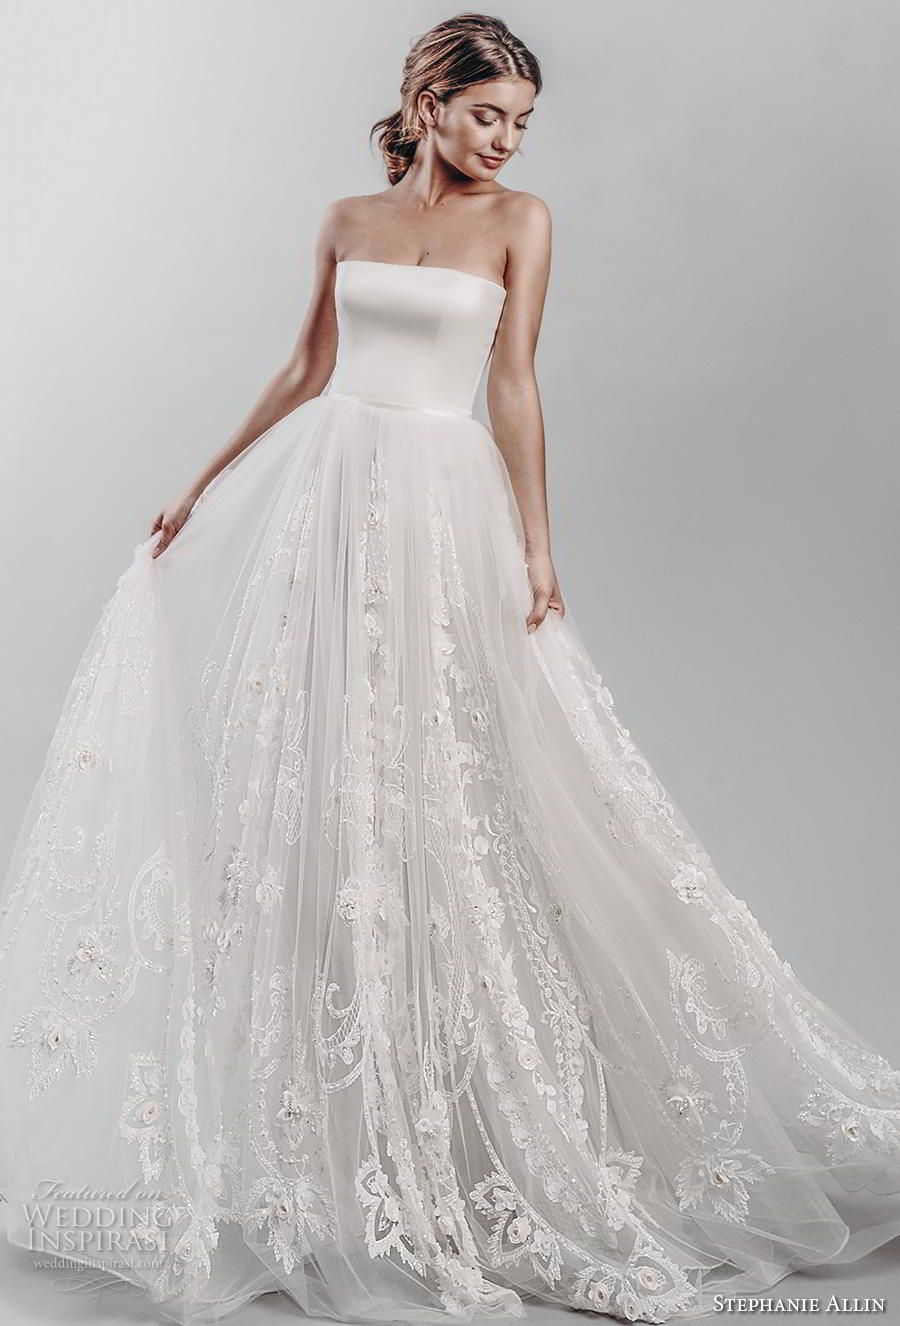 Cute Girl Wedding Dress Boutiques Near Me in 2020 Plain